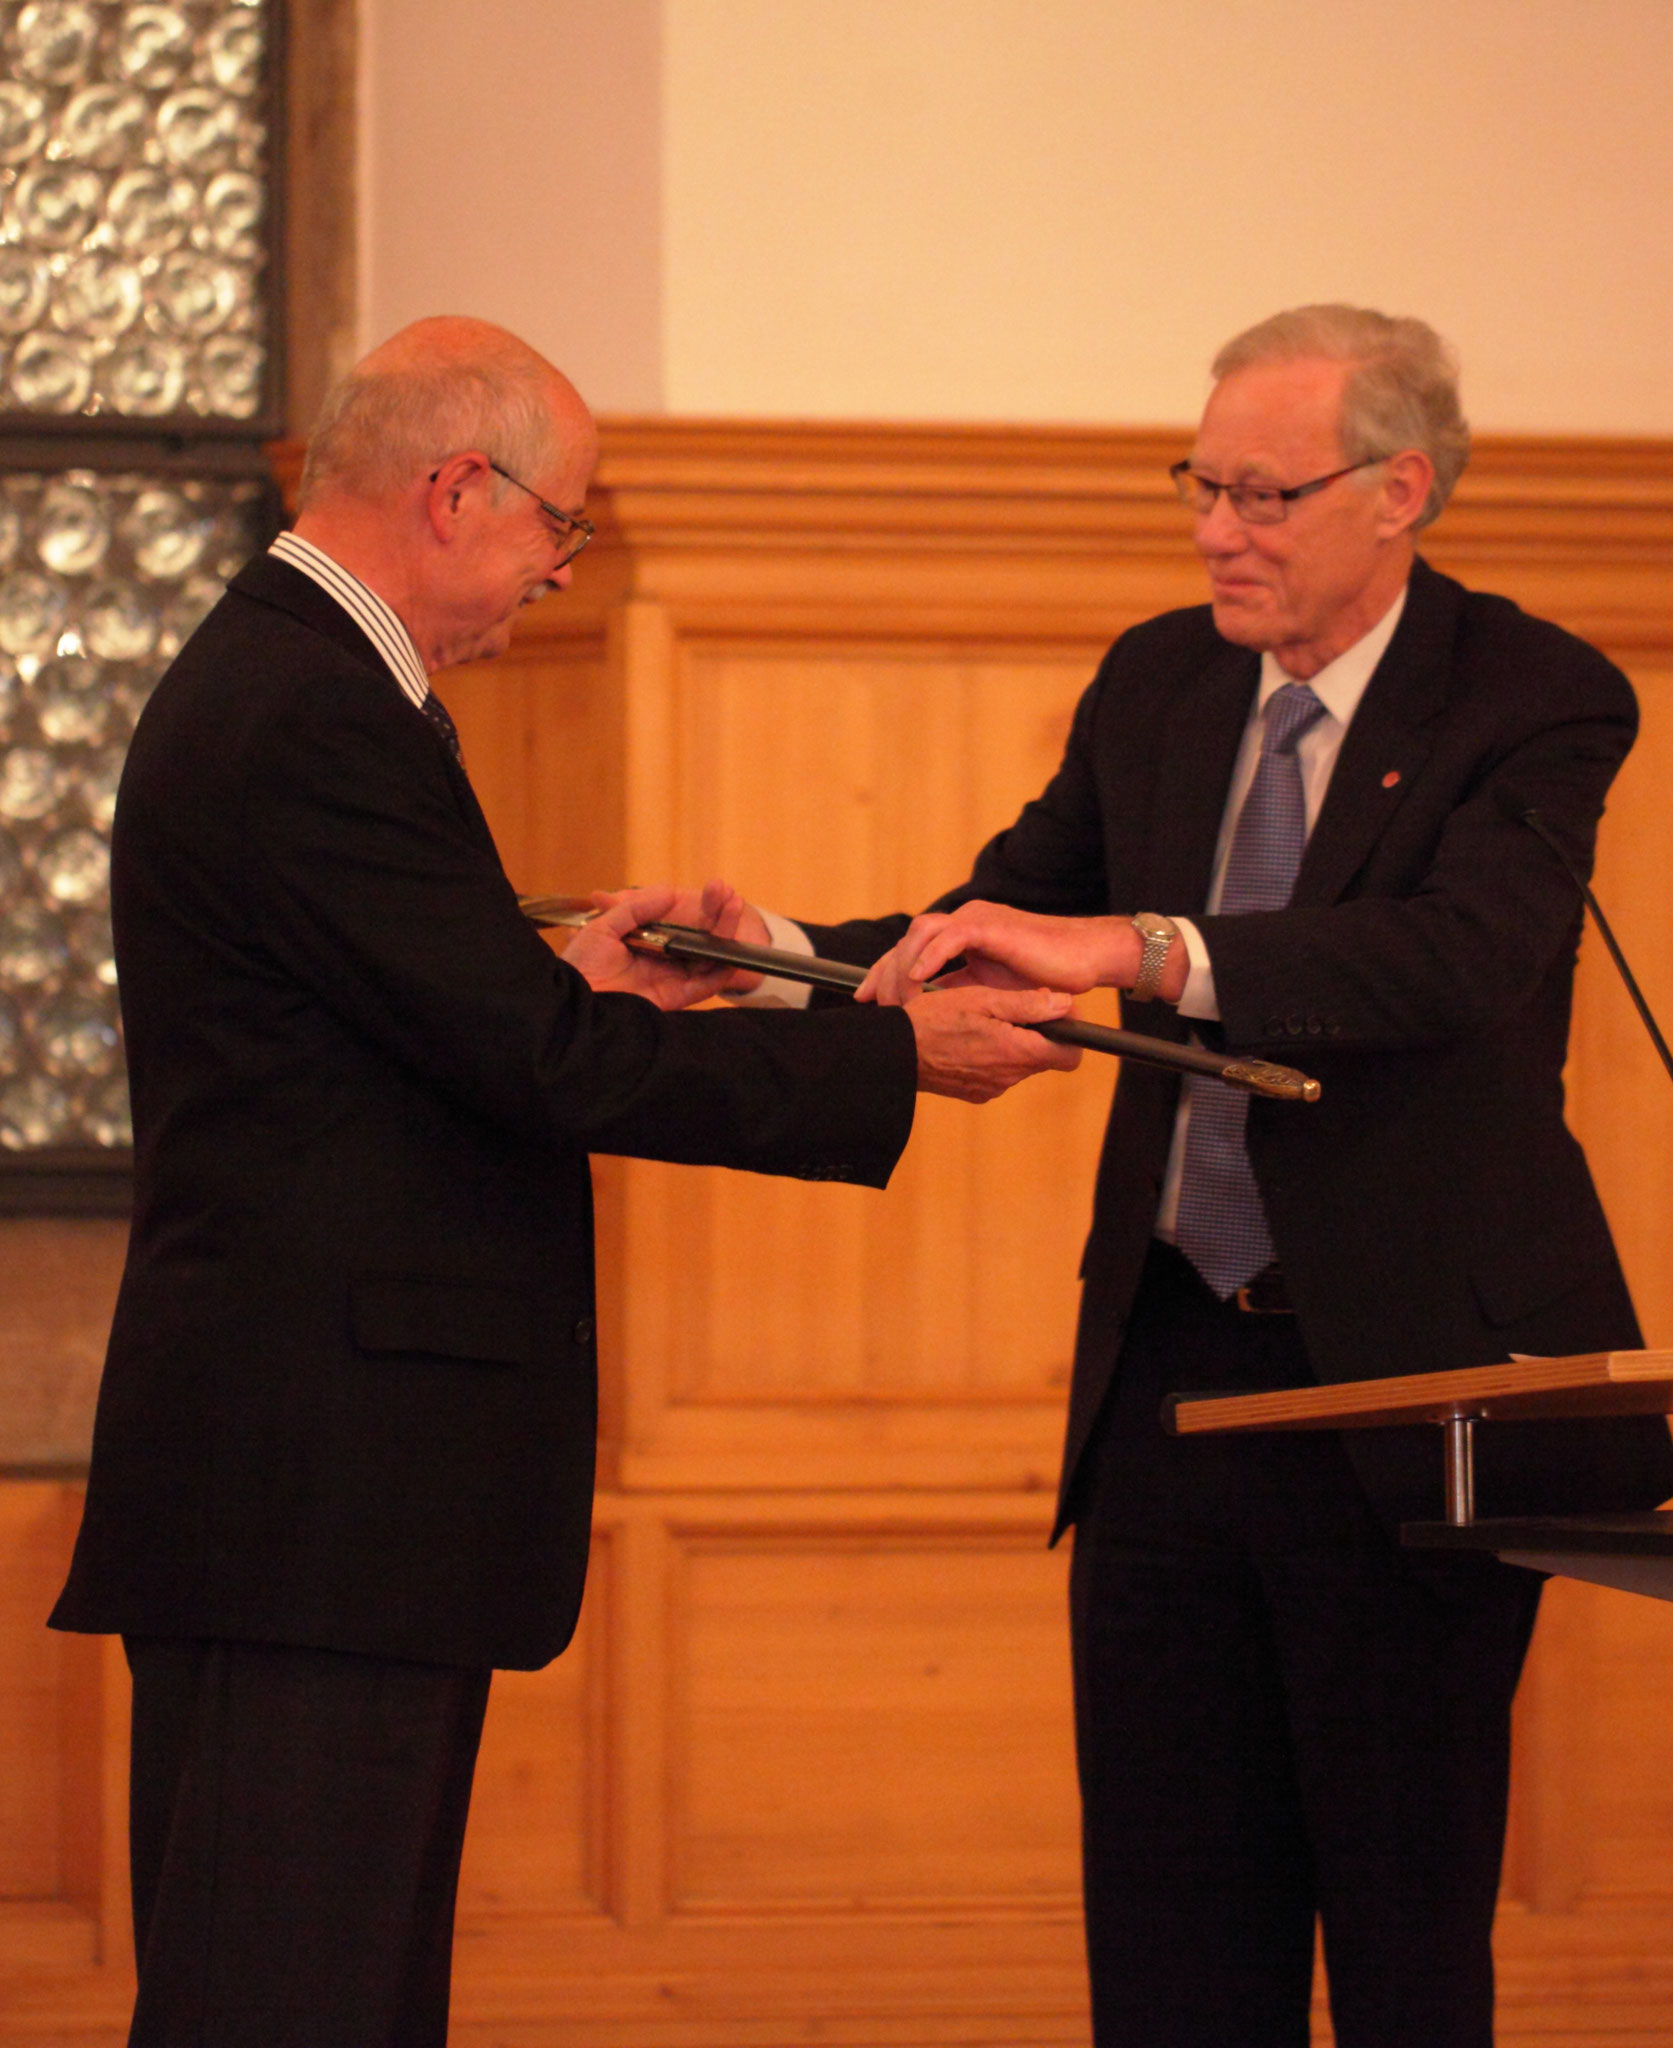 Prof. Johan Meijer (right) is giving the Knights' sword to Prof. Manfred Geiger (left) at LANE 2010